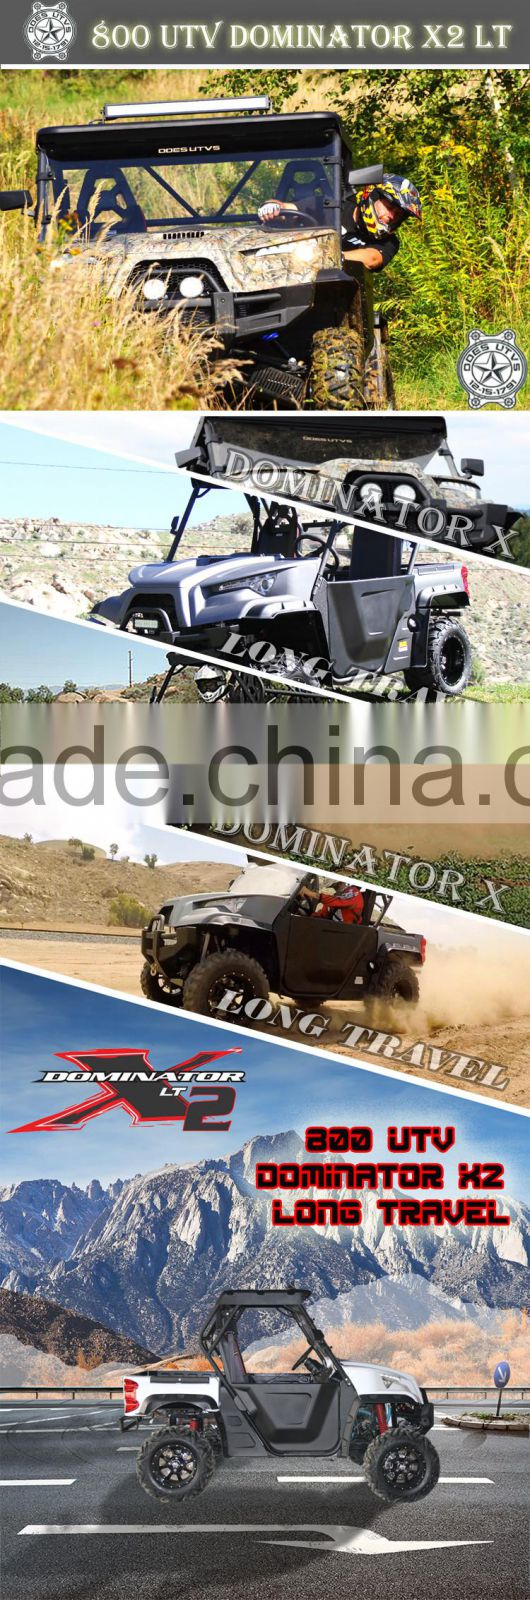 CHINA DOMINATOR X2 LONG TRAVEL SIDE BY SIDE harga utv 4x4